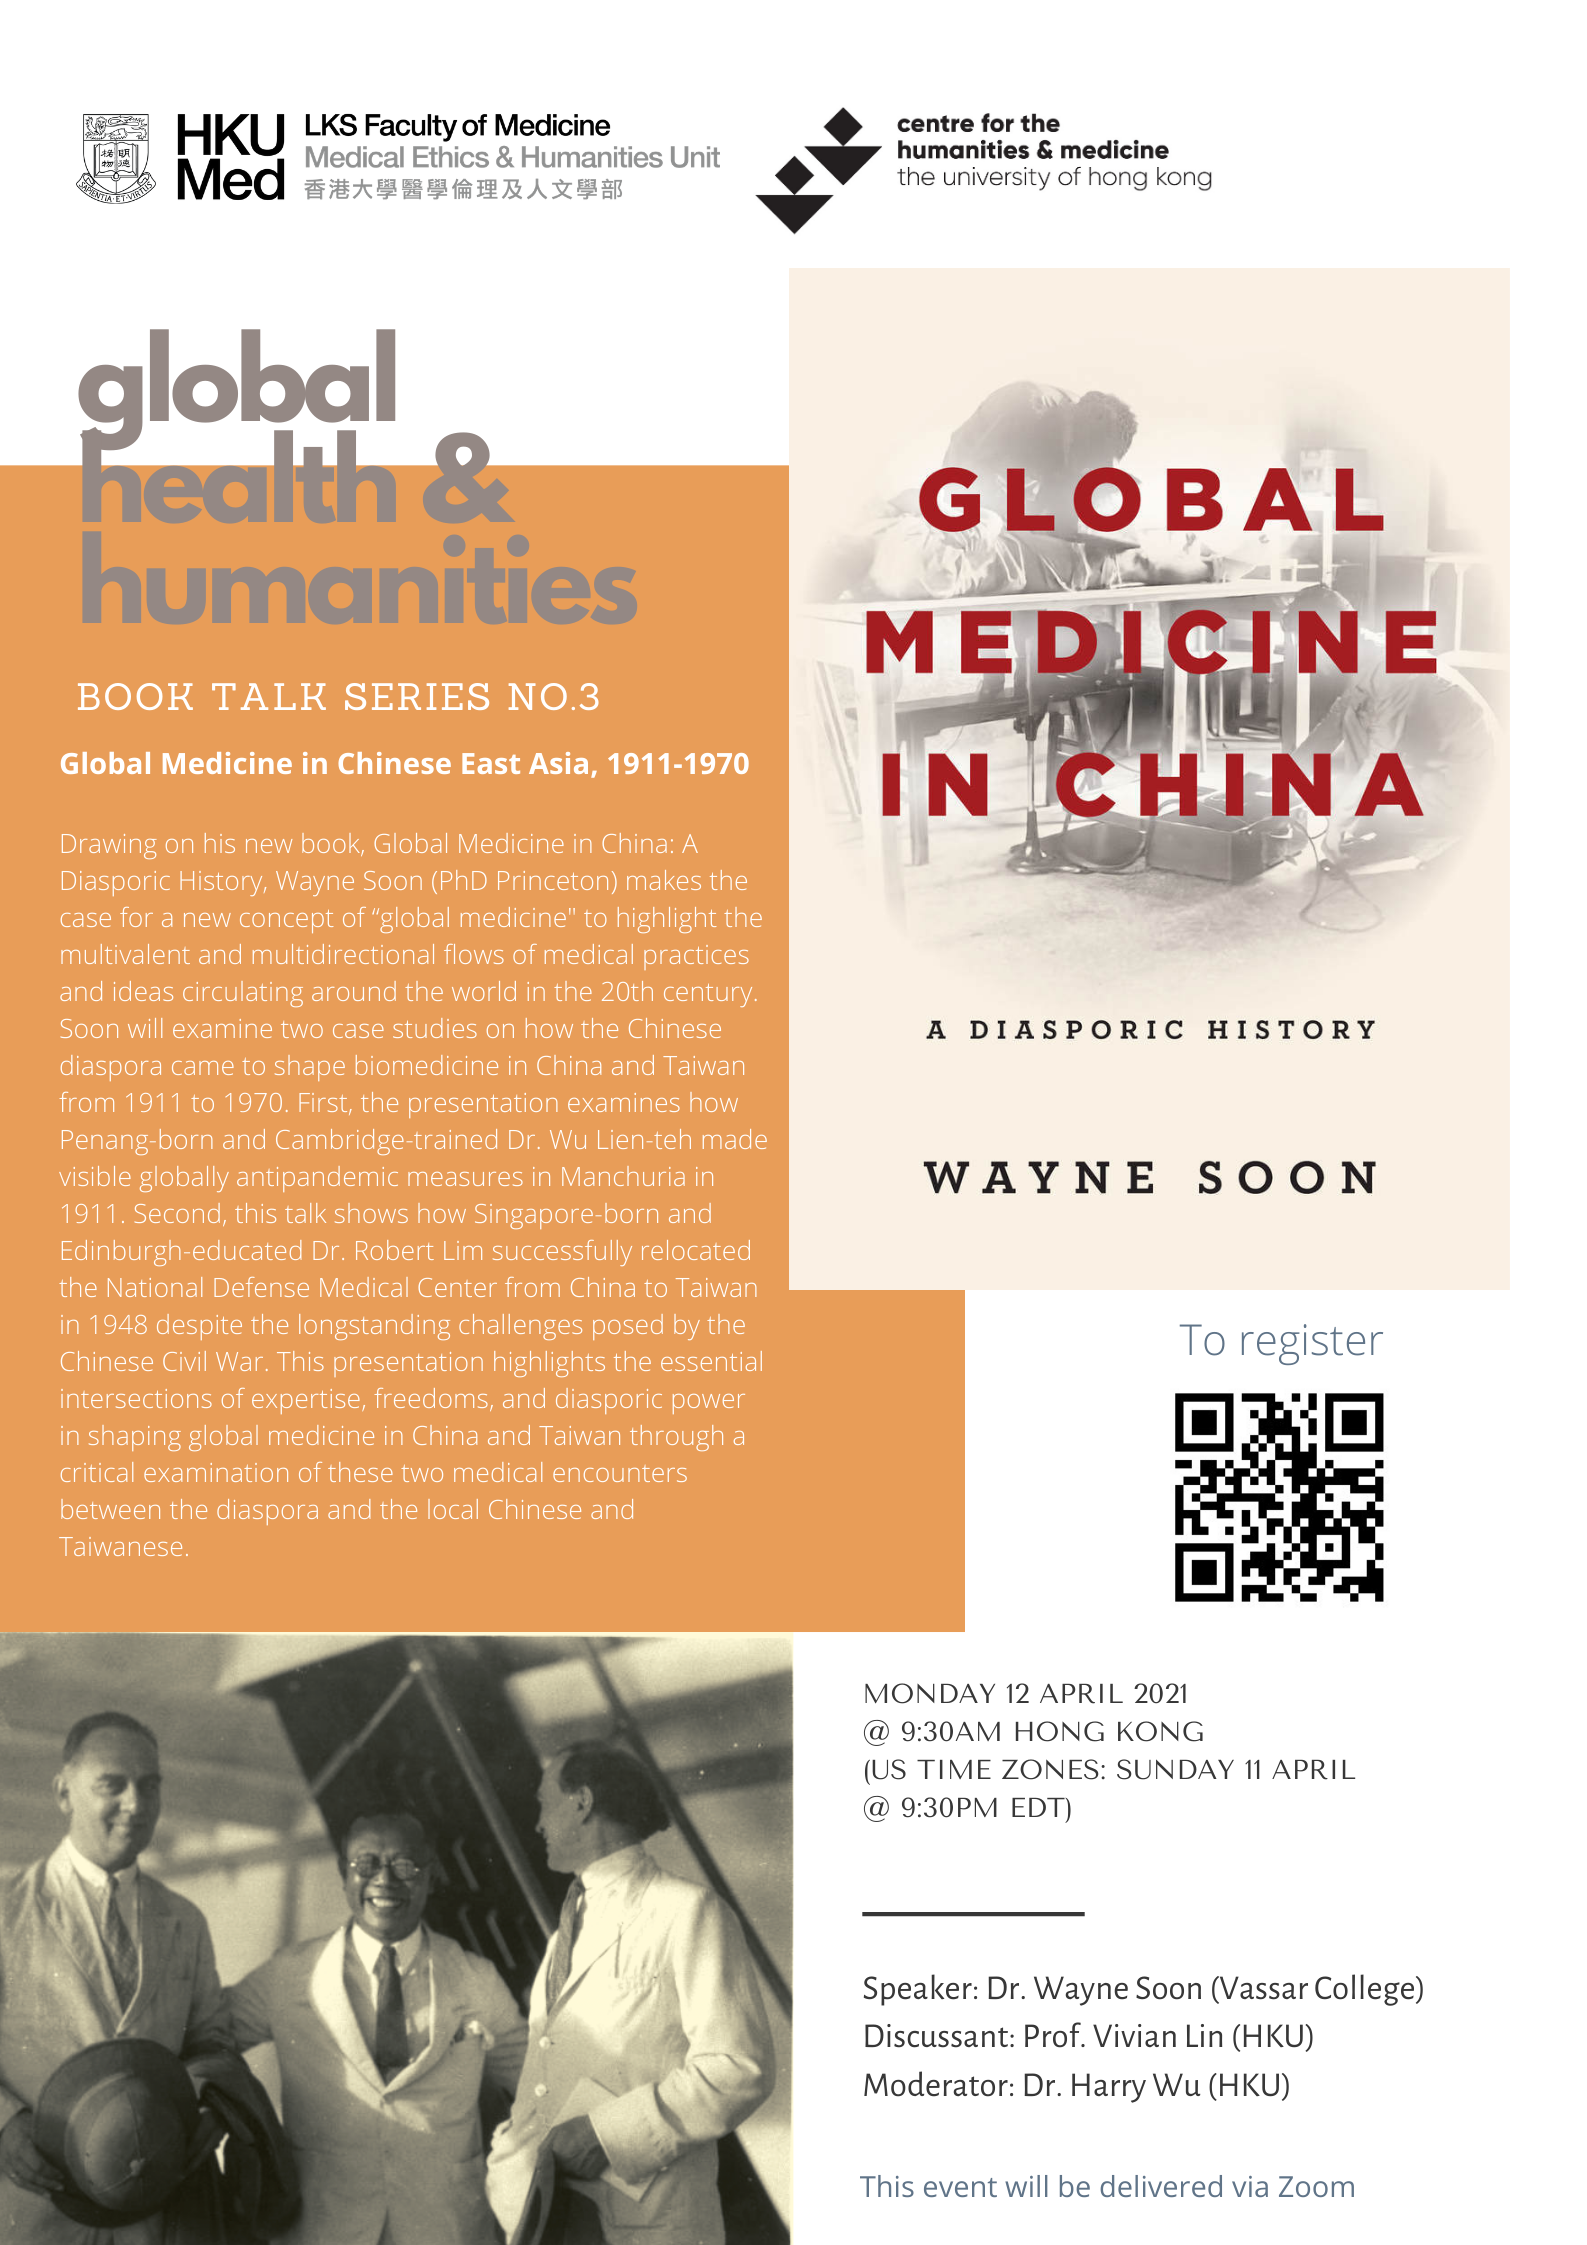 Book Talk Series No.3-  Global Medicine in Chinese East Asia, 1911-1970